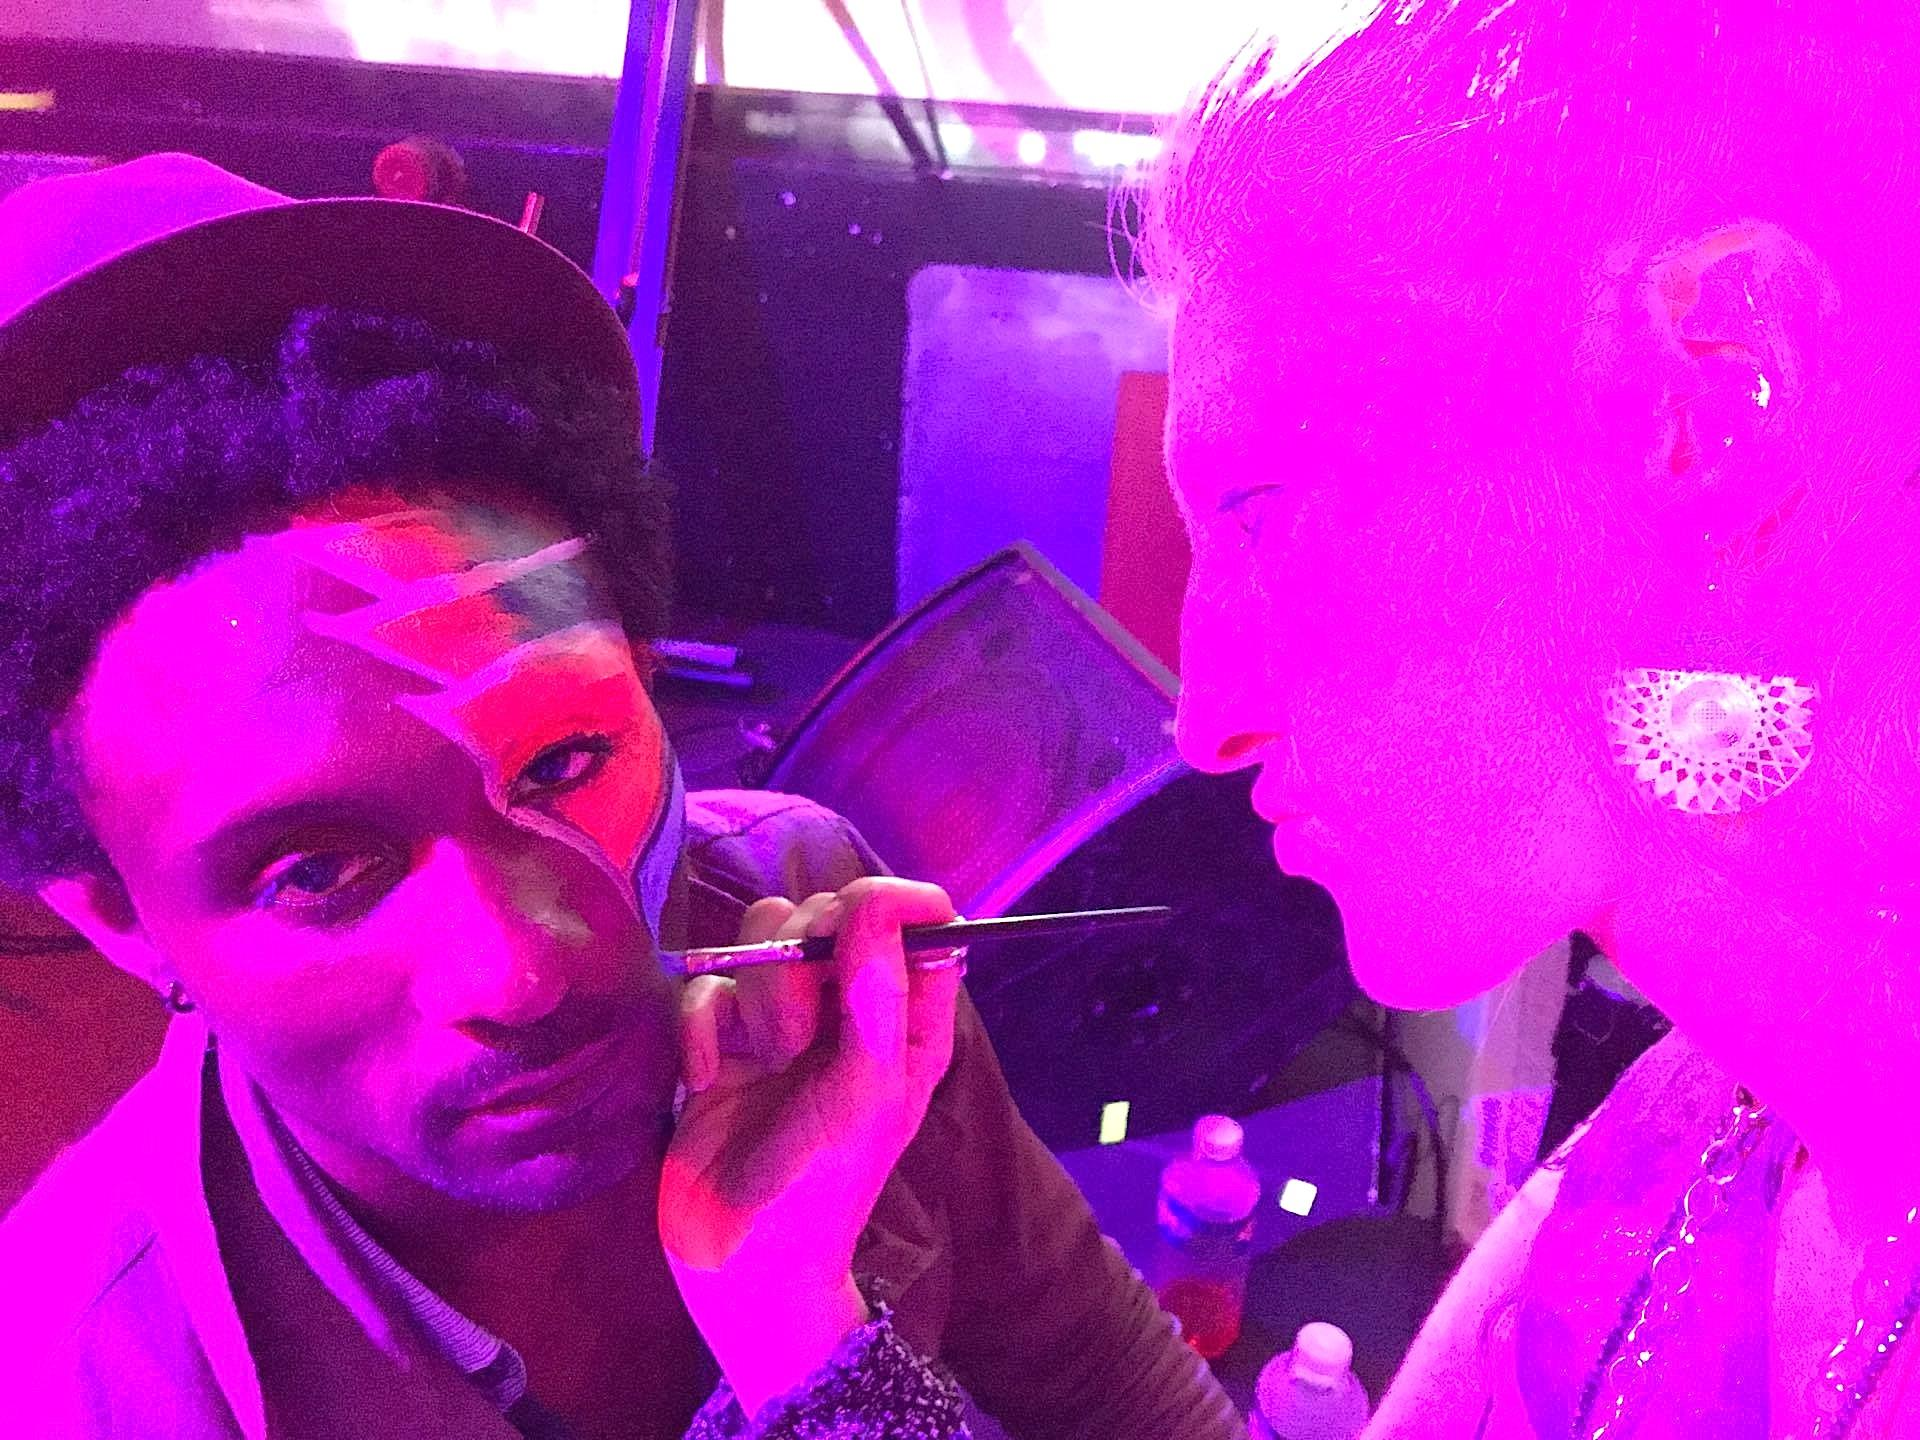 Luminous make-up for a stellar performer - Browny M